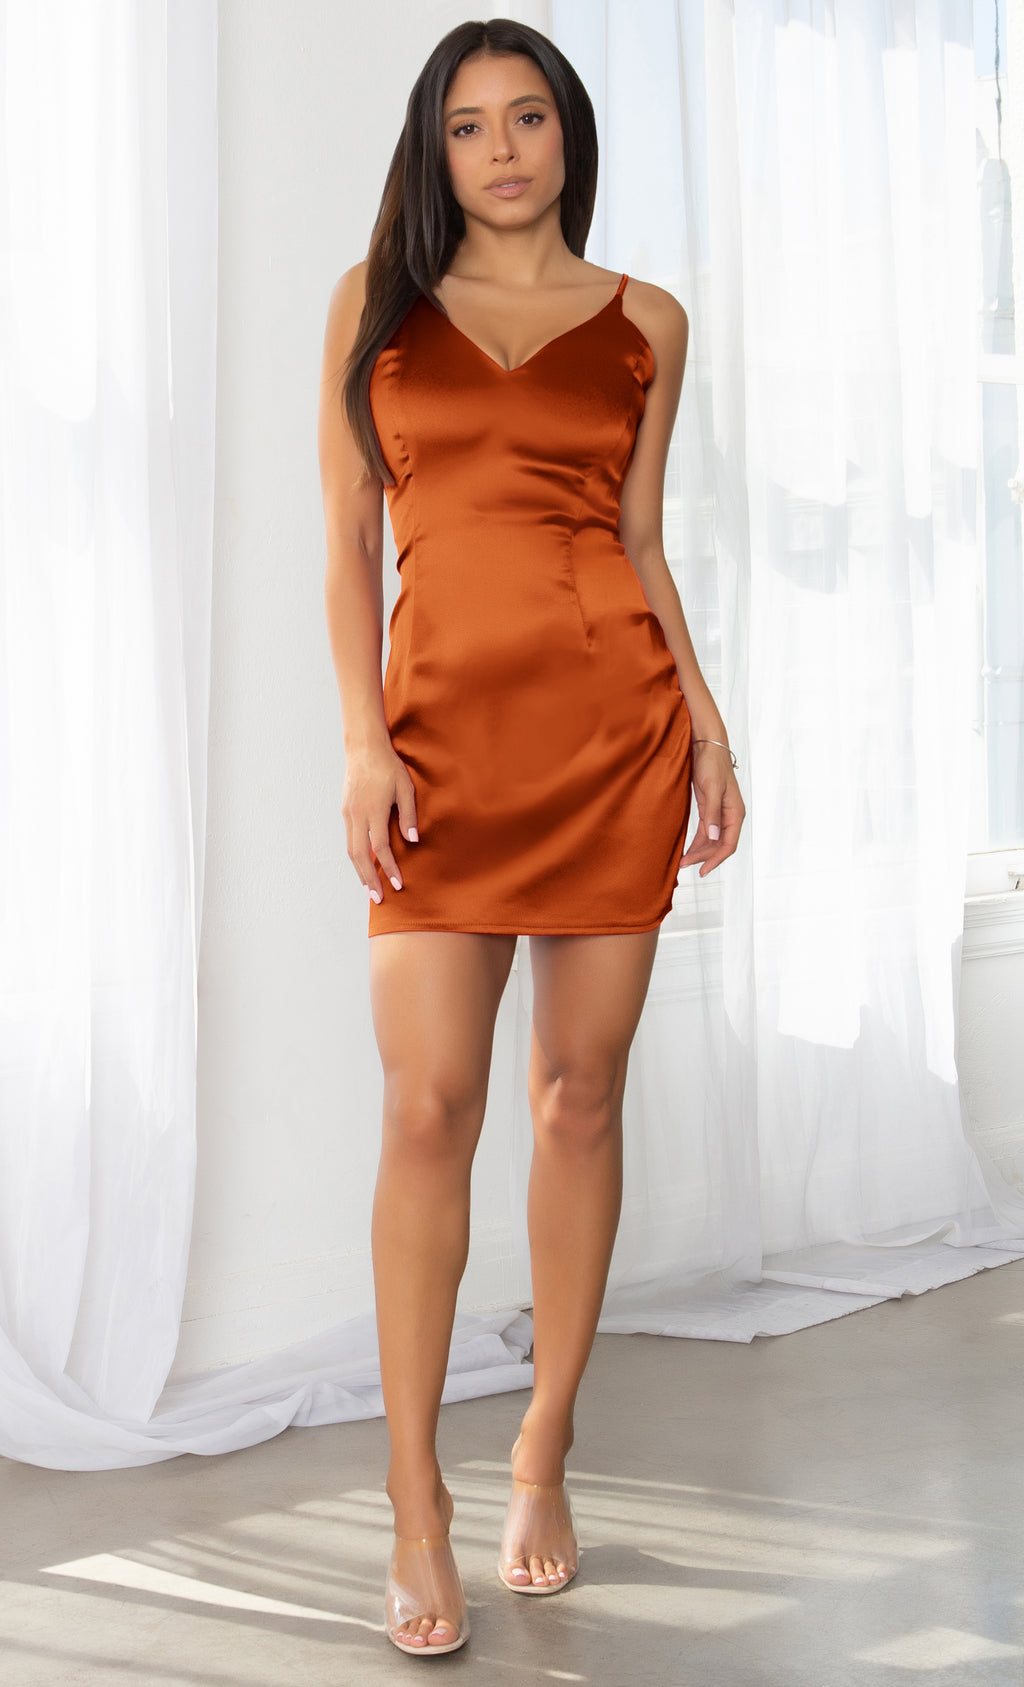 Call Things Burnt Orange Off Sleeveless Spaghetti Satin Strap V Neck Flare Mini Dress - Inspired by Selena Gomez